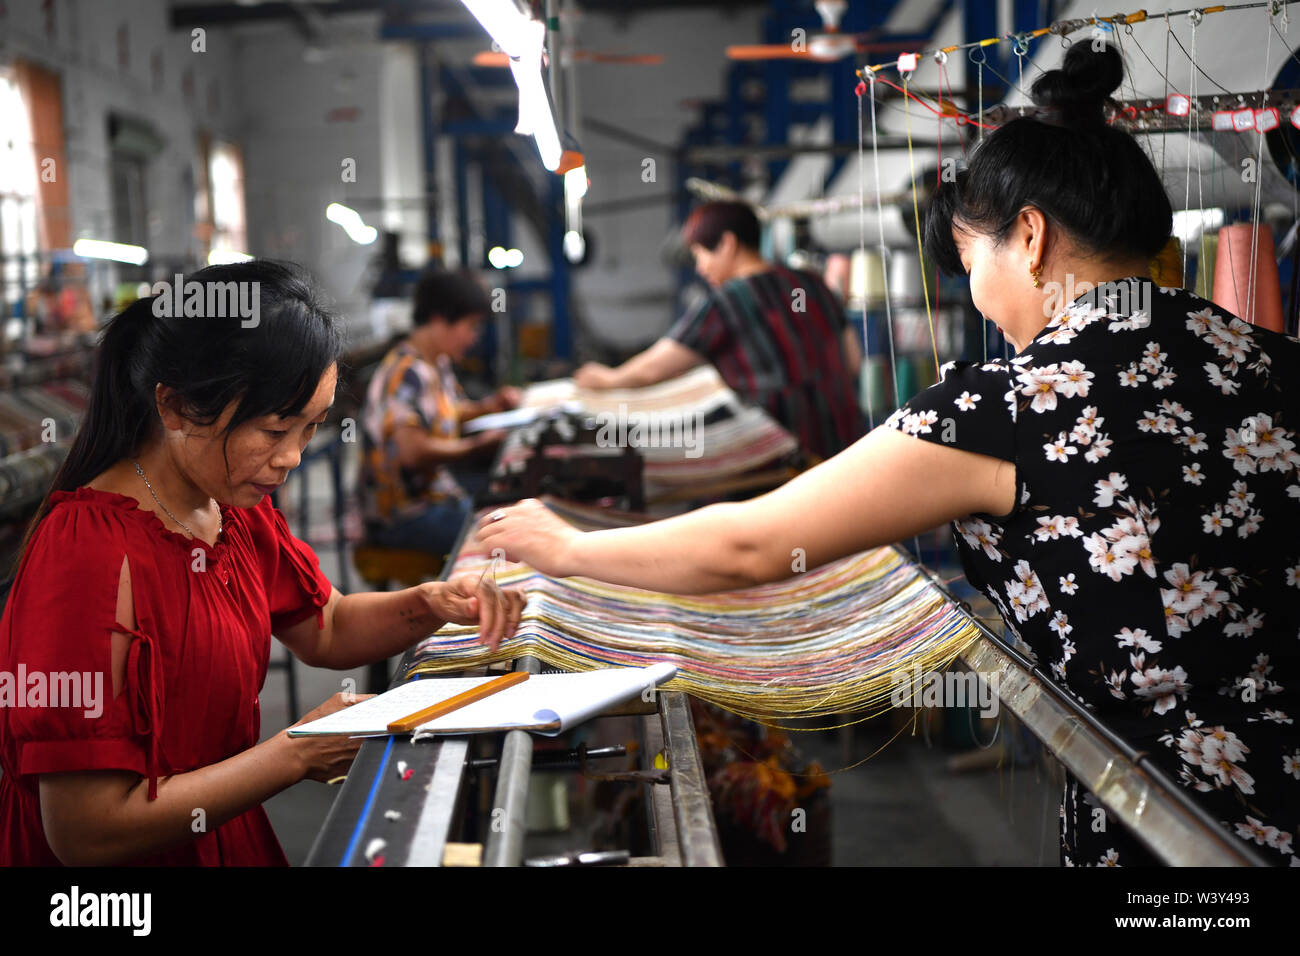 Nanyang, China's Henan Province. 17th July, 2019. Workers weave silk carpets at the workshop of Nanyang Yuxiang Craftworks Co., Ltd. in Nanyang, central China's Henan Province, July 17, 2019. The silk carpets made in Nanzhao County, featuring the Persian style, have been exported to more than 30 countries and regions, boosting the local economy and farmers' income. Credit: Li Jianan/Xinhua/Alamy Live News - Stock Image